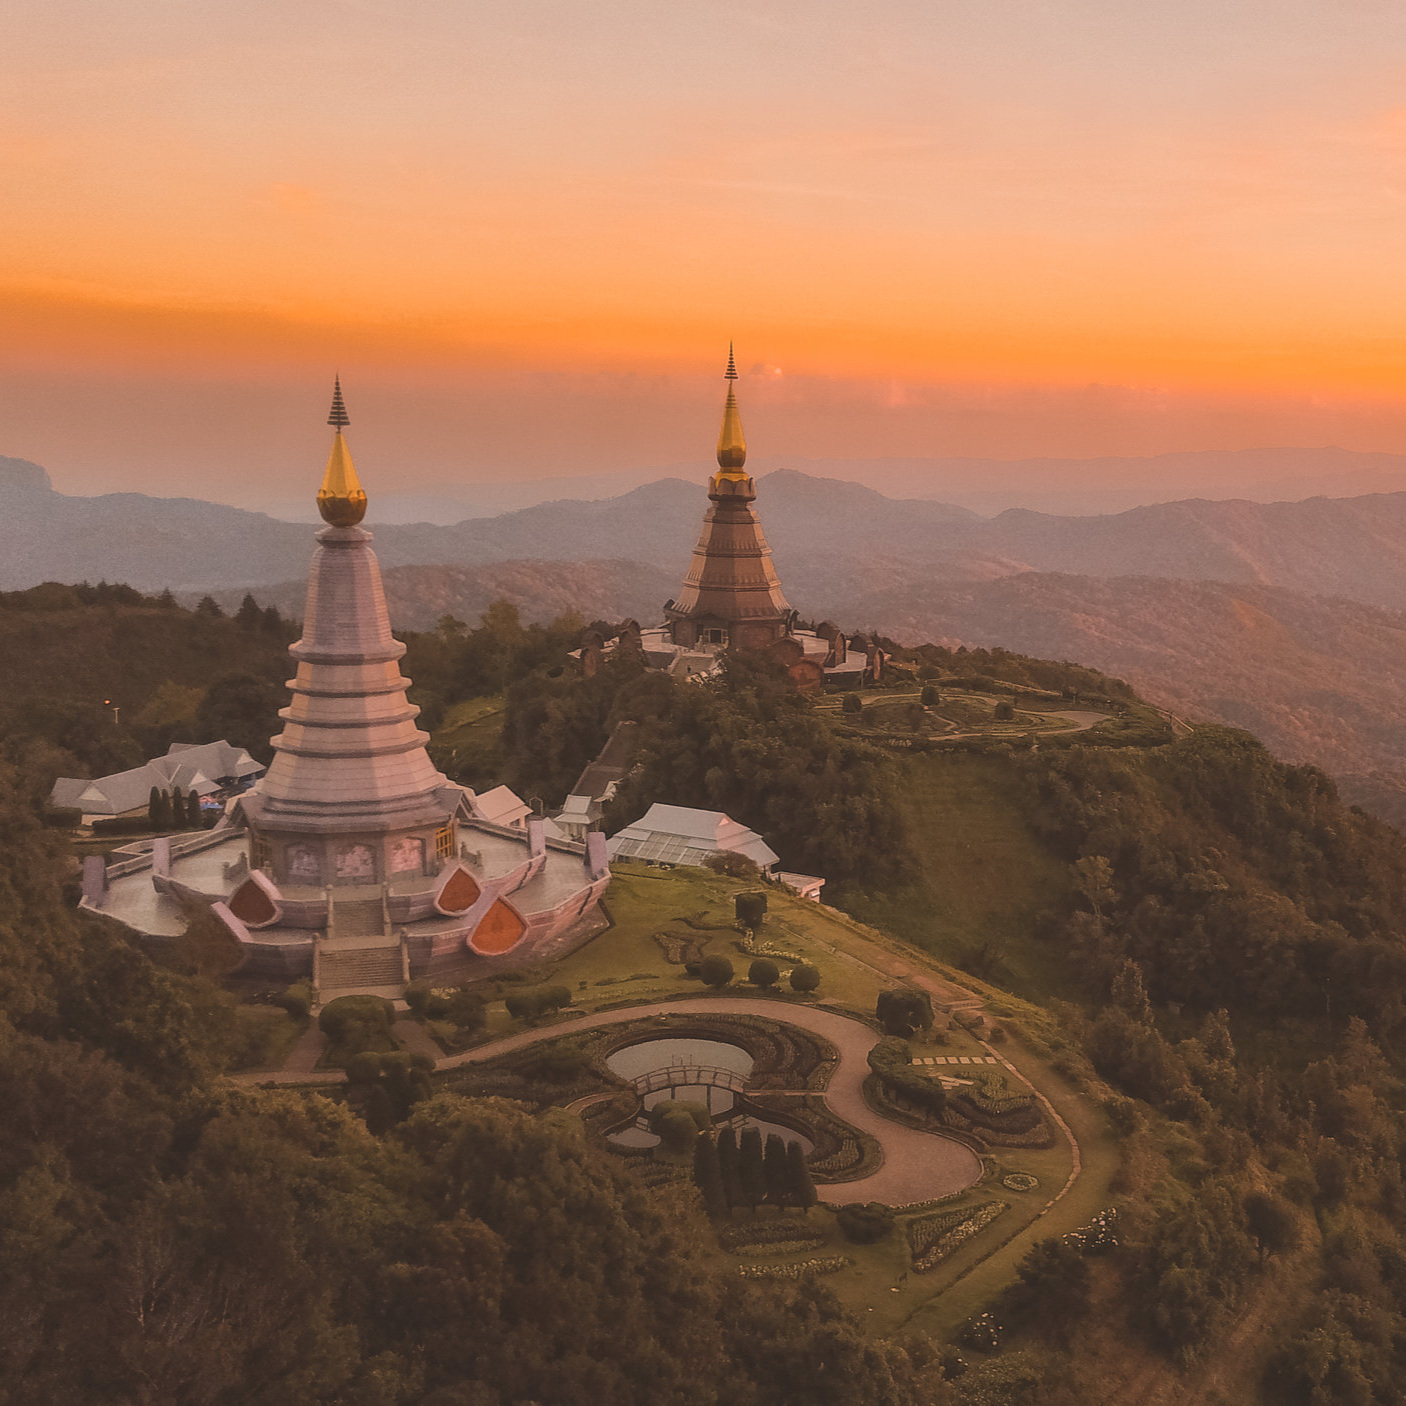 The Experience - an exploration & service retreat - COMING IN EARLY 2020A week-long women's retreat and service voyage to Thailand - with Nousha Salimi